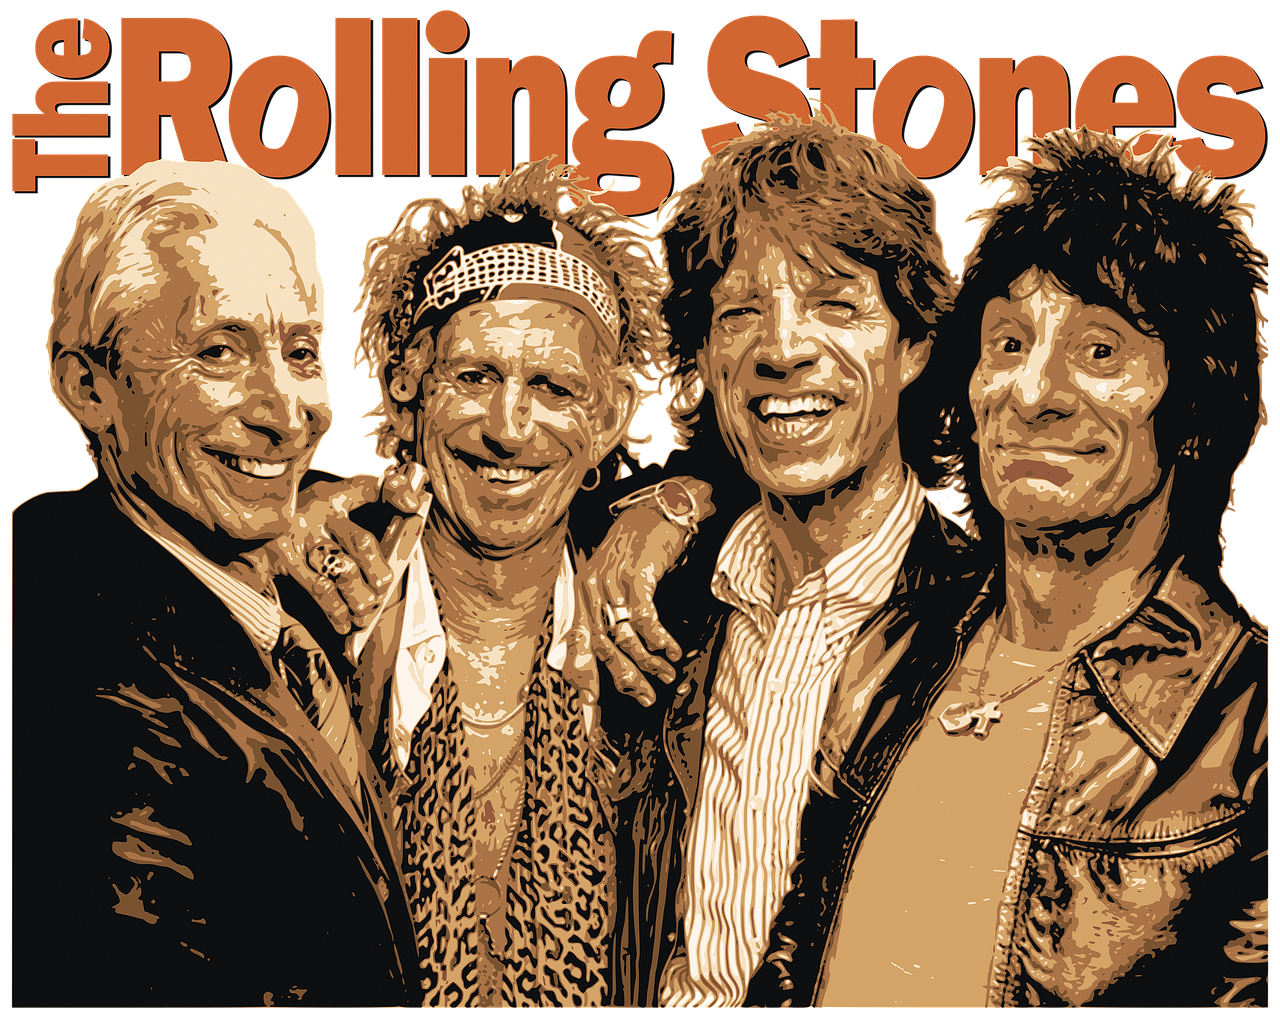 The Rolling Stones Rock'N'Roll - Free image on Pixabay